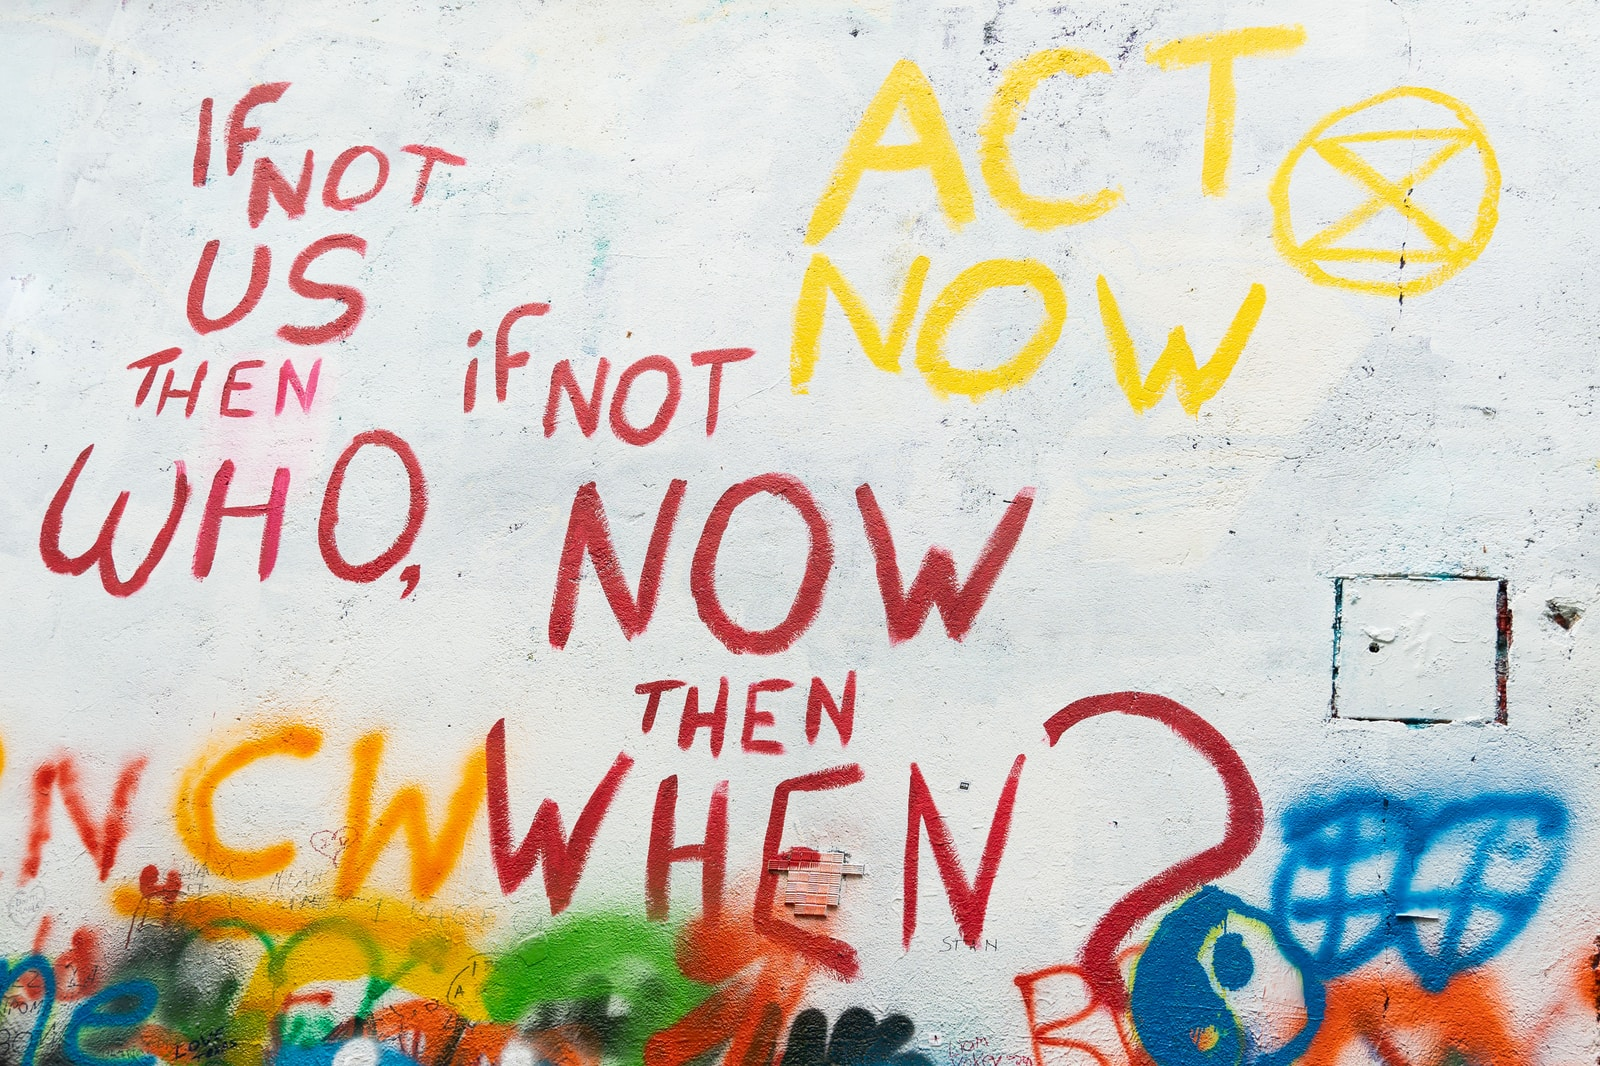 painting if not us then who, if not now then when